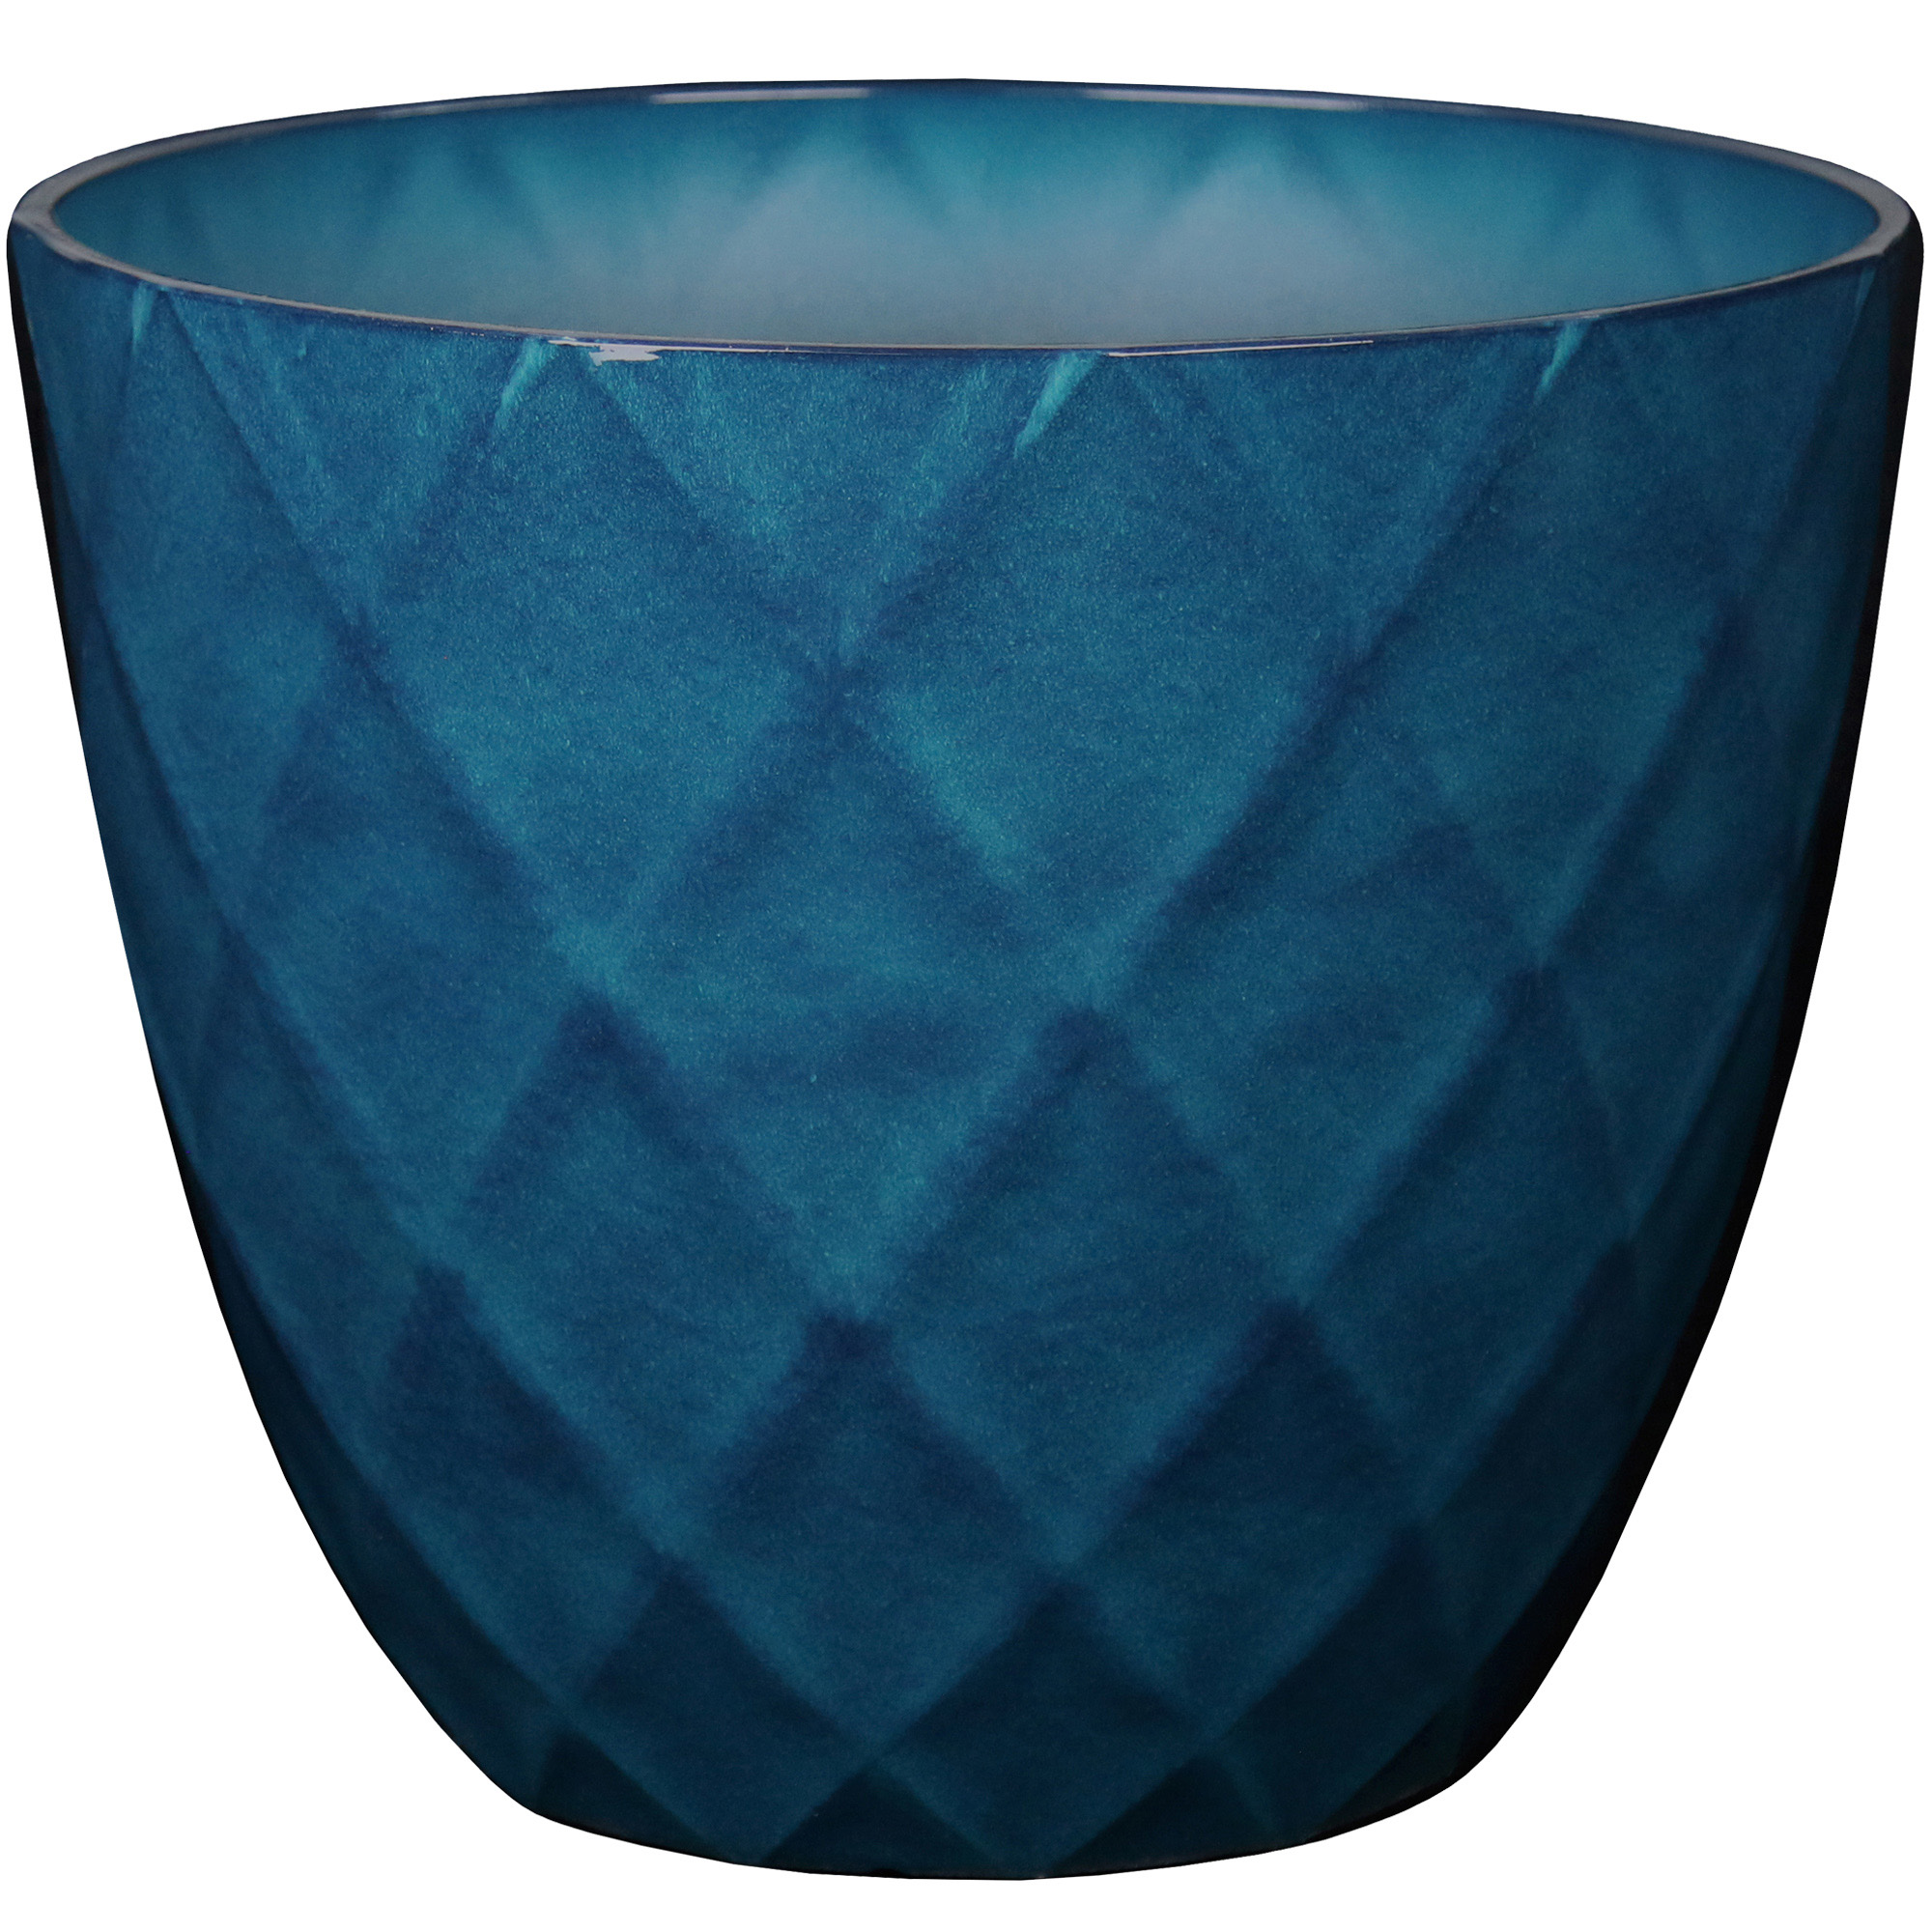 20IN DIAMOND BLUE PLANTER